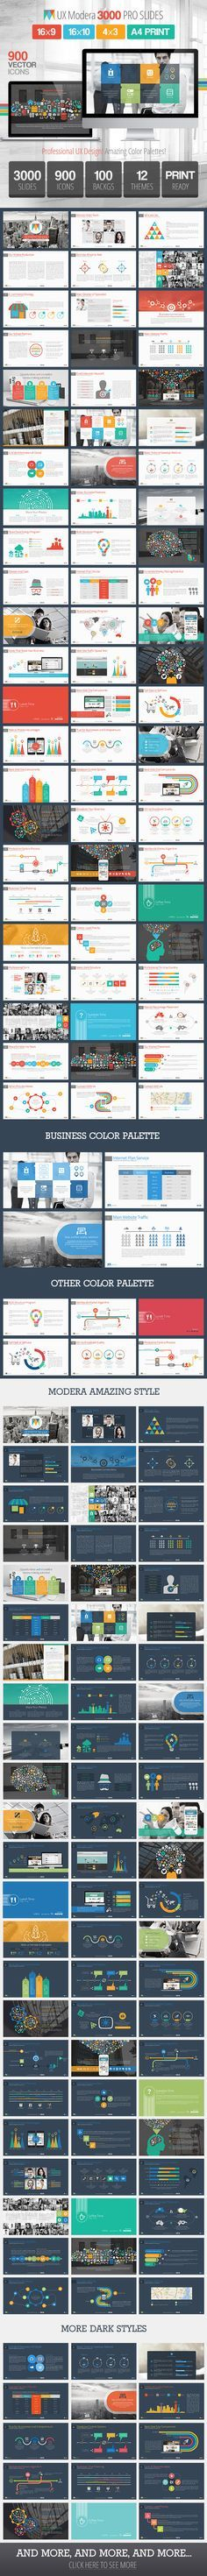 UX Modera Presentation Template for Keynote Template | Buy and Download: http://graphicriver.net/item/ux-modera-presentation-template-for-keynote/9319493?ref=ksioks